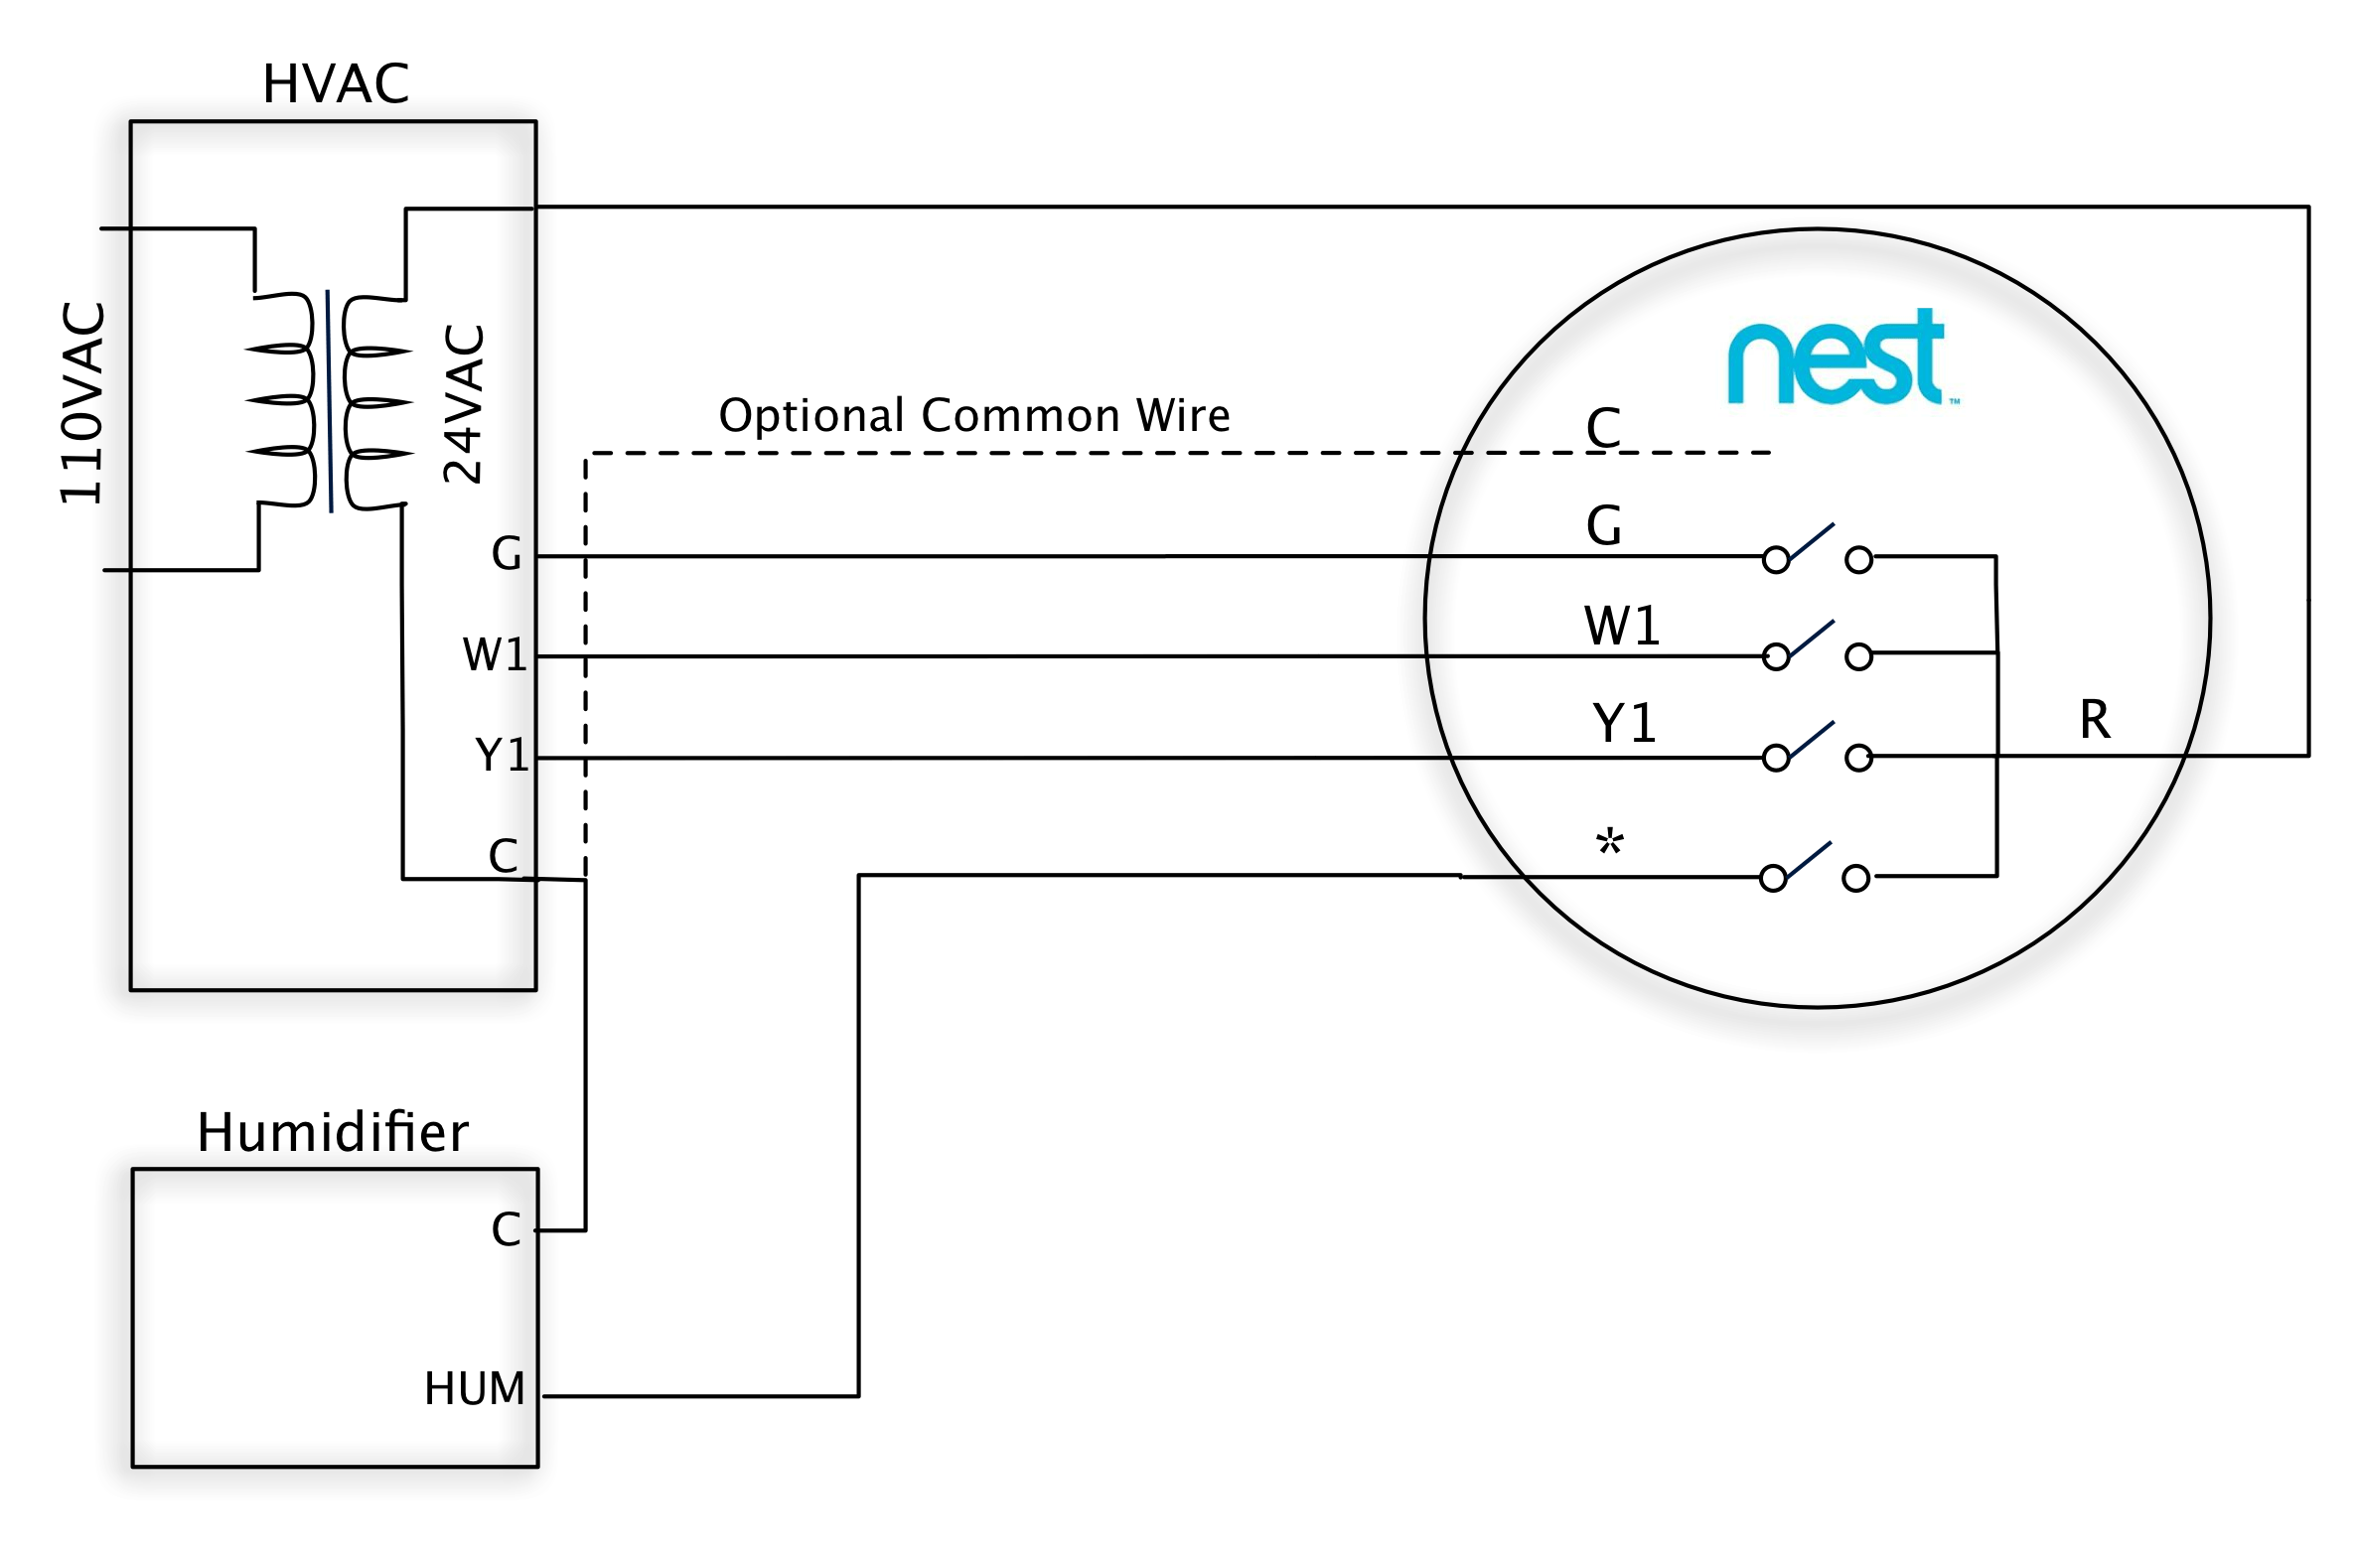 Wiring diagram for nest thermostat uk free download wiring diagram internal thermostat wiring diagram wiring diagram cheapraybanclubmaster Gallery